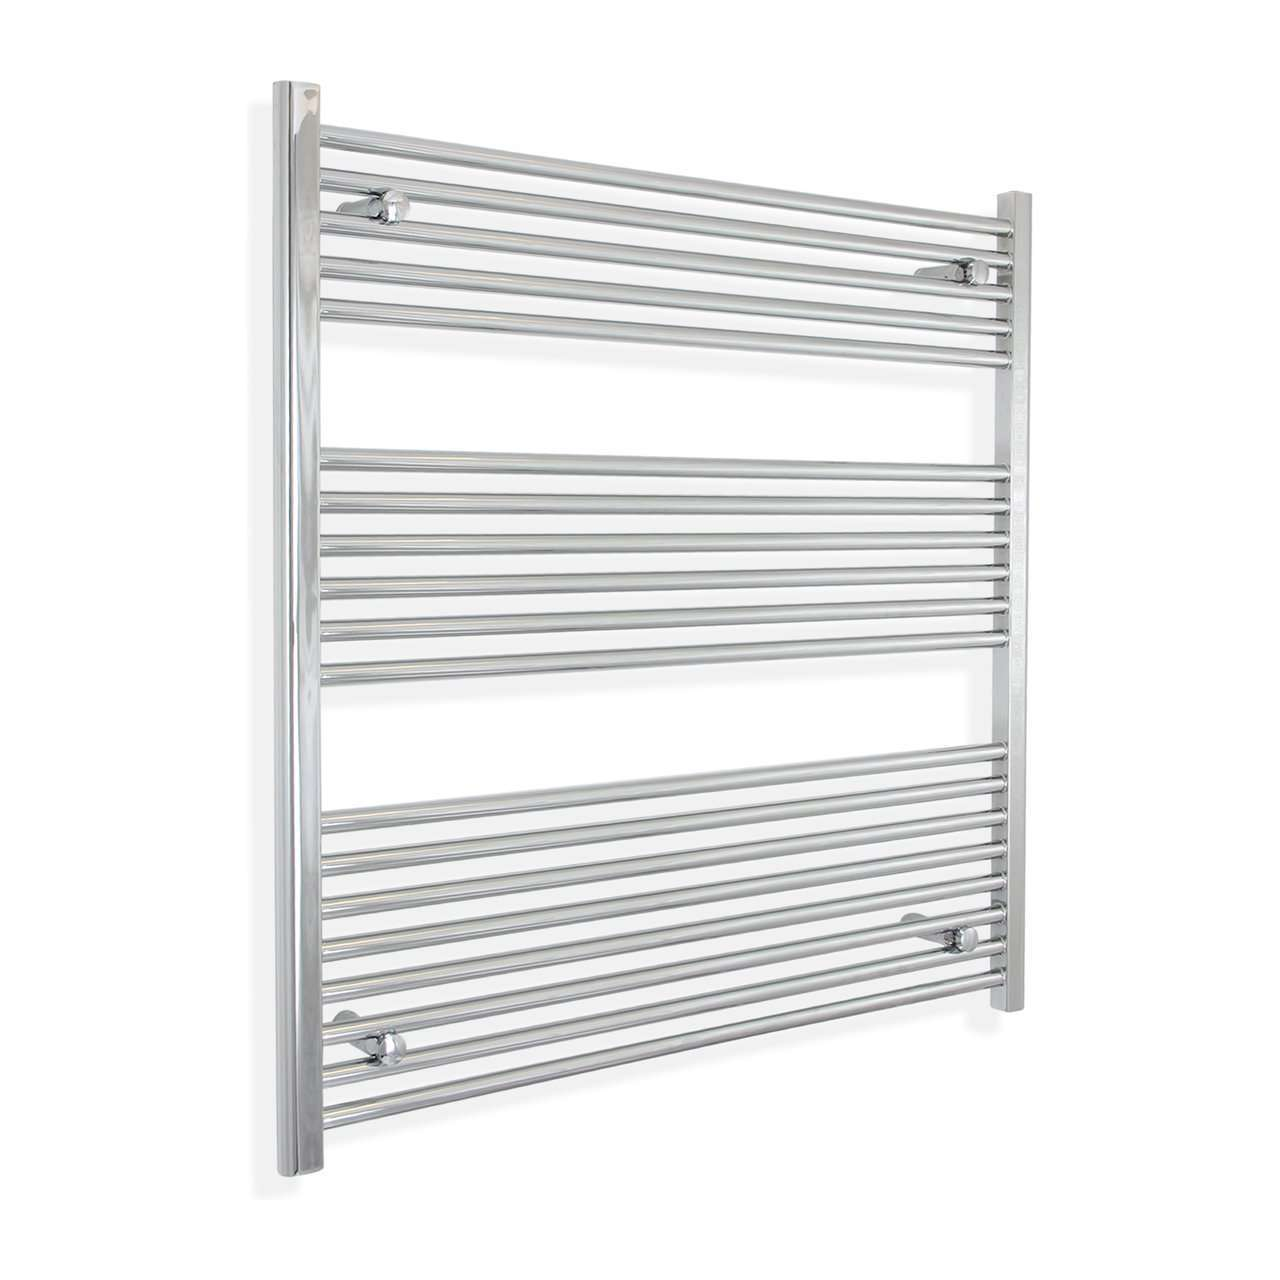 1200mm Wide 900mm High Flat Chrome Heated Towel Rail Radiator HTR,Towel Rail Only